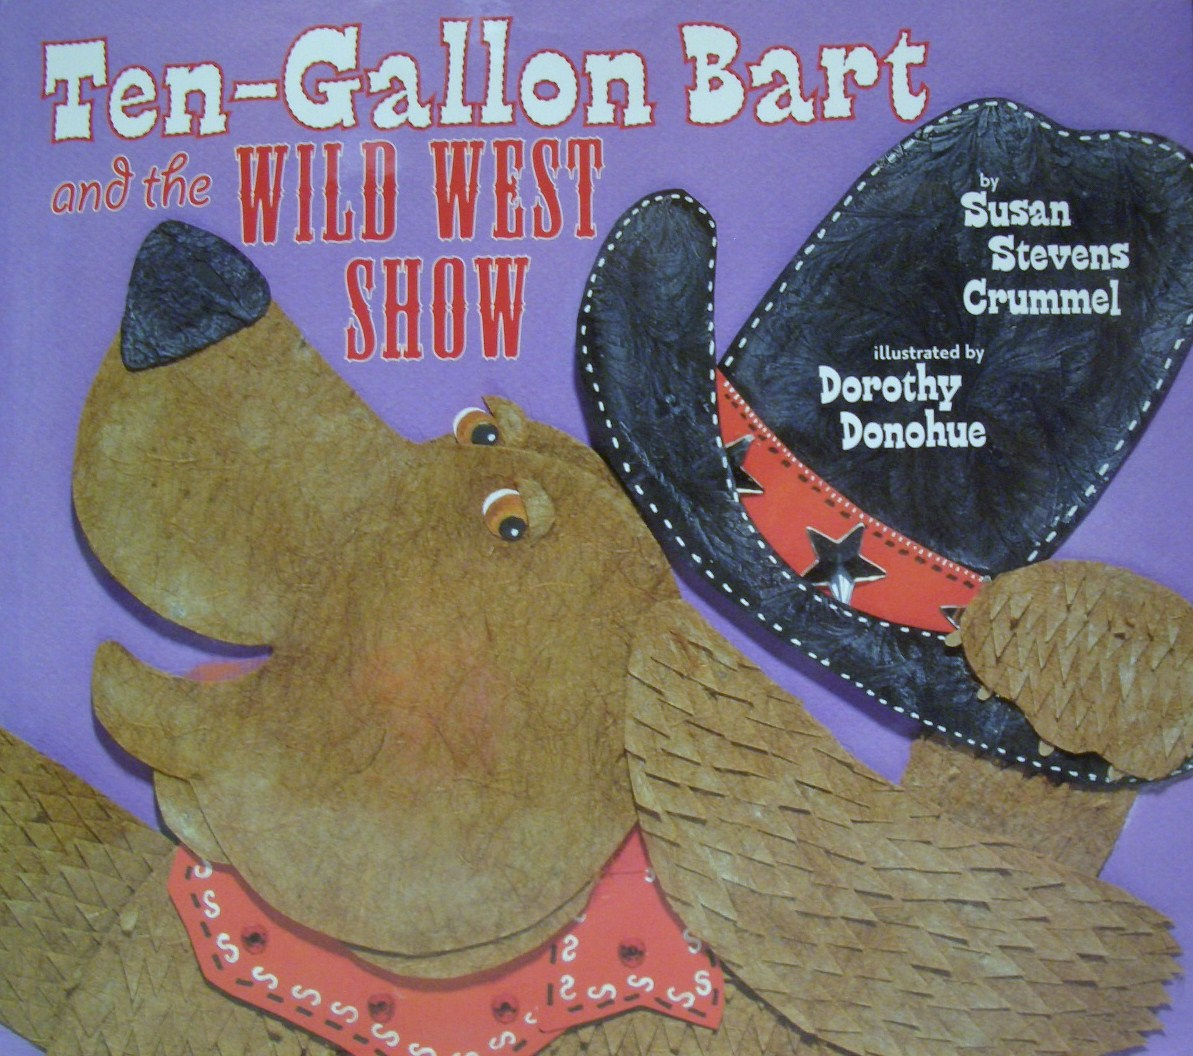 Ten Gallon Bart WW Show cover.JPG